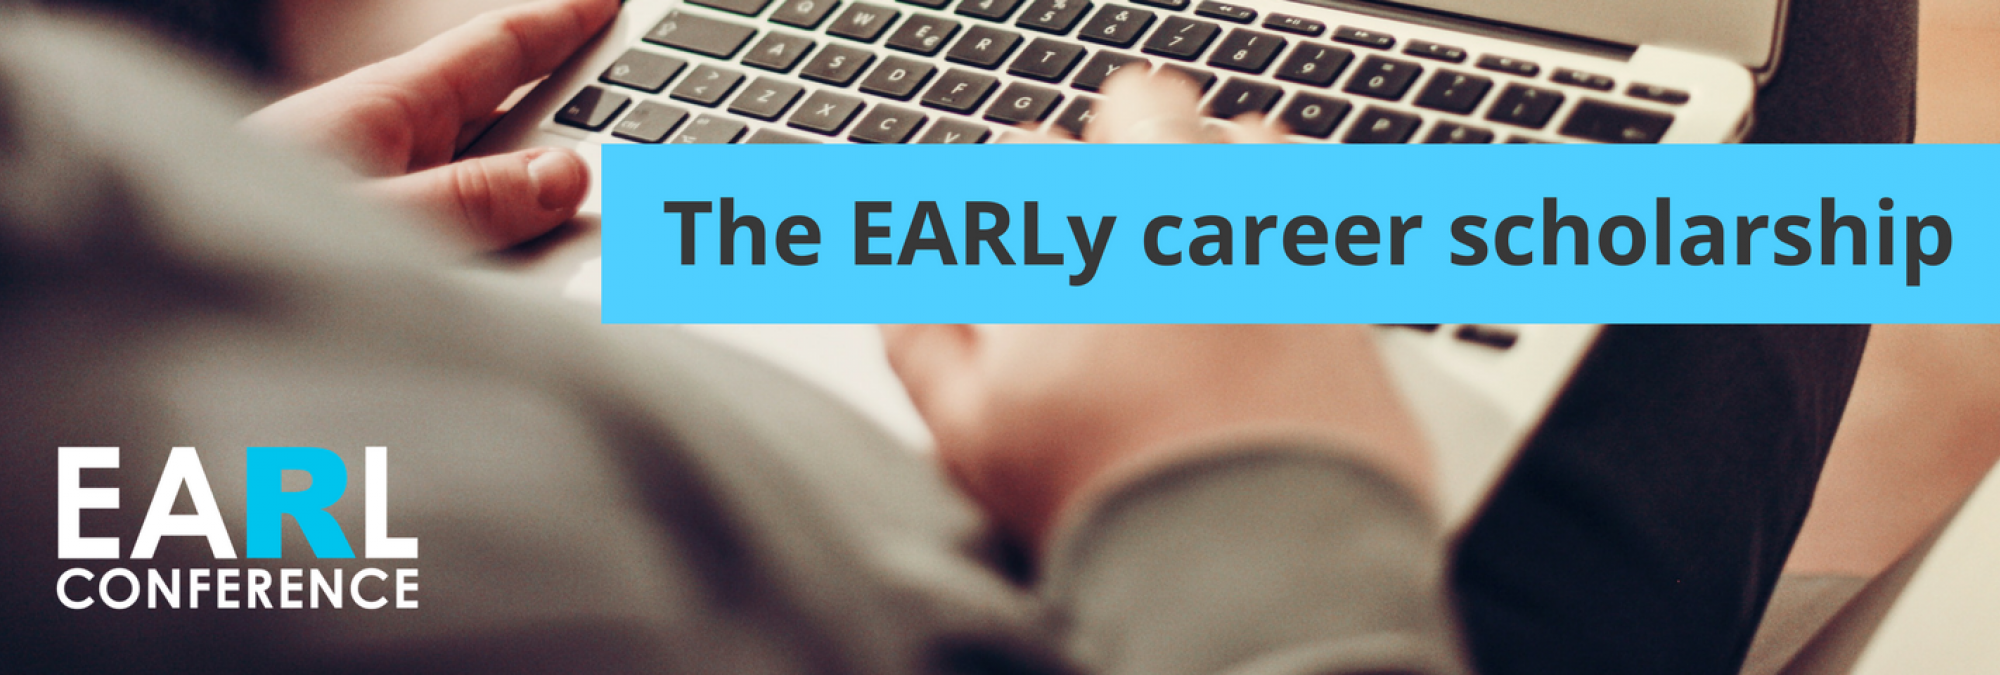 The EARLy career scholarship